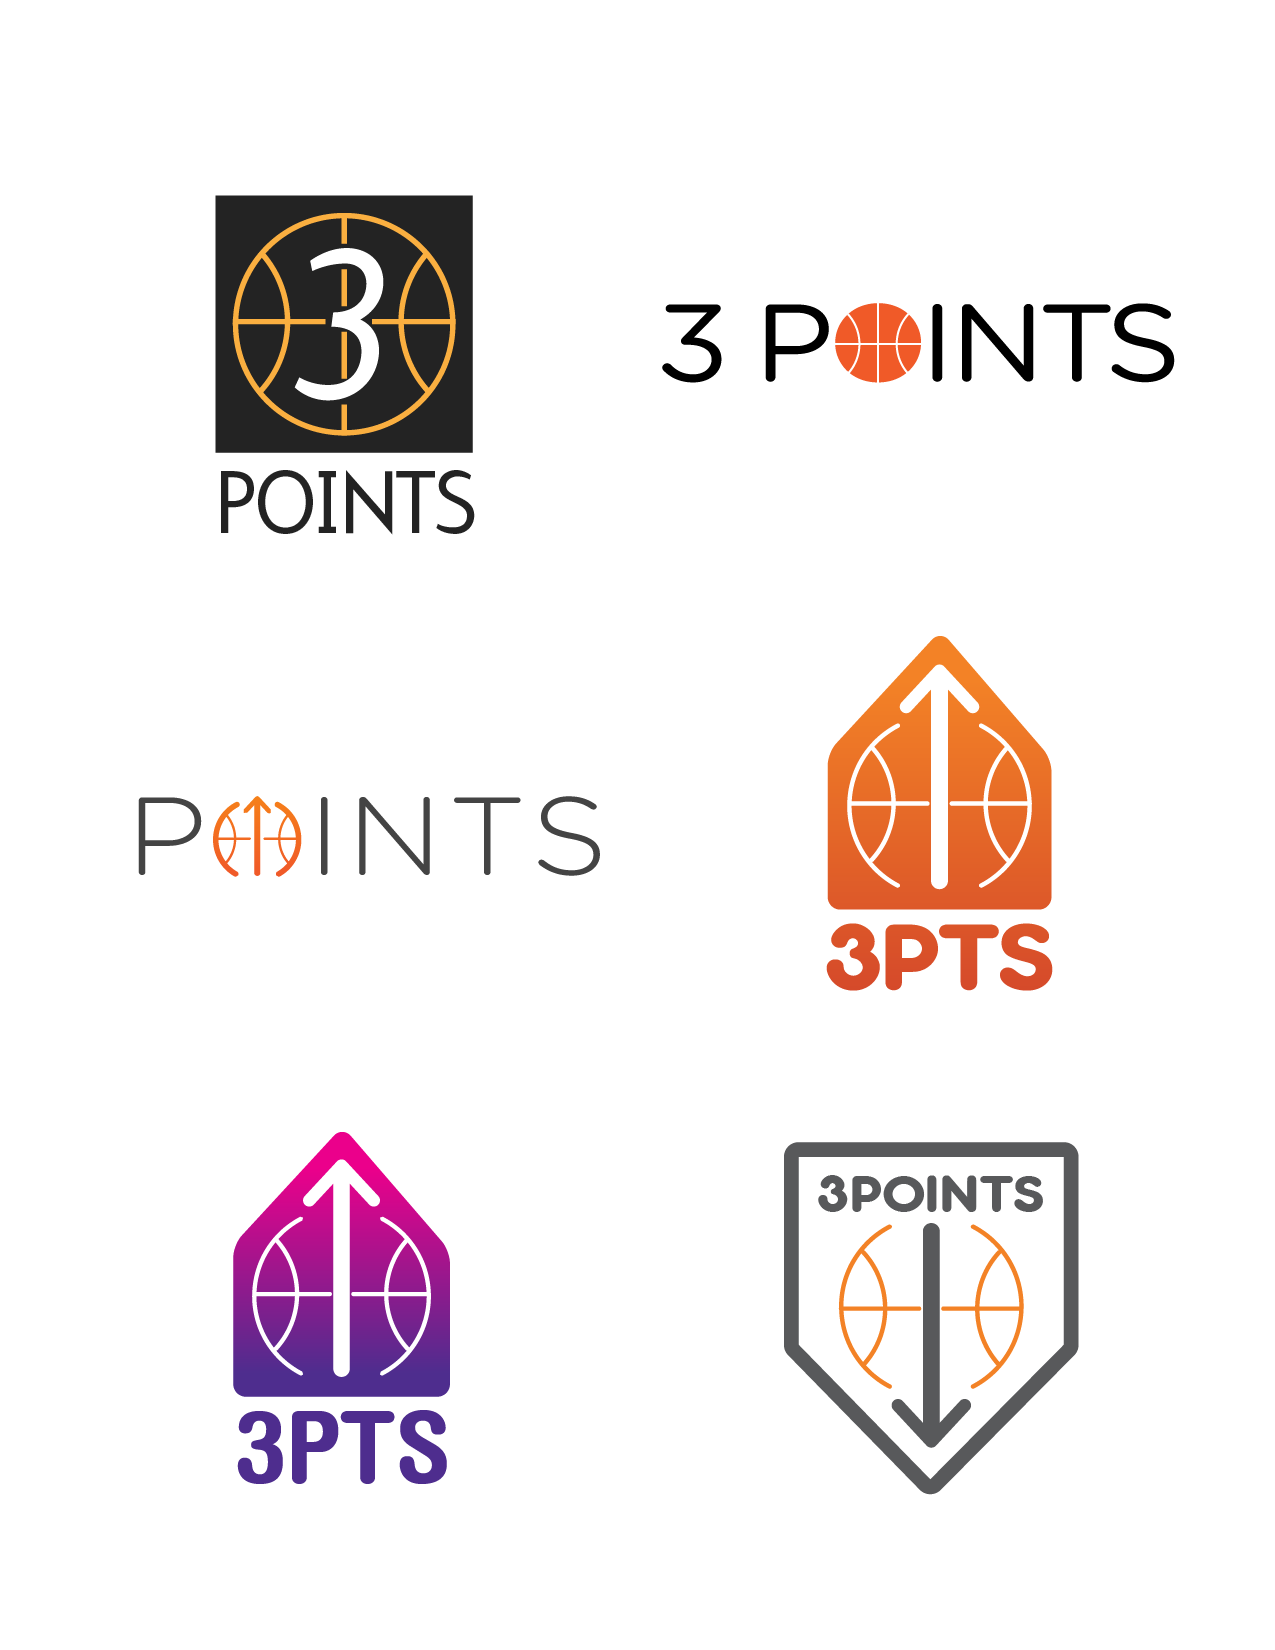 3points_branding_09142016-03.png